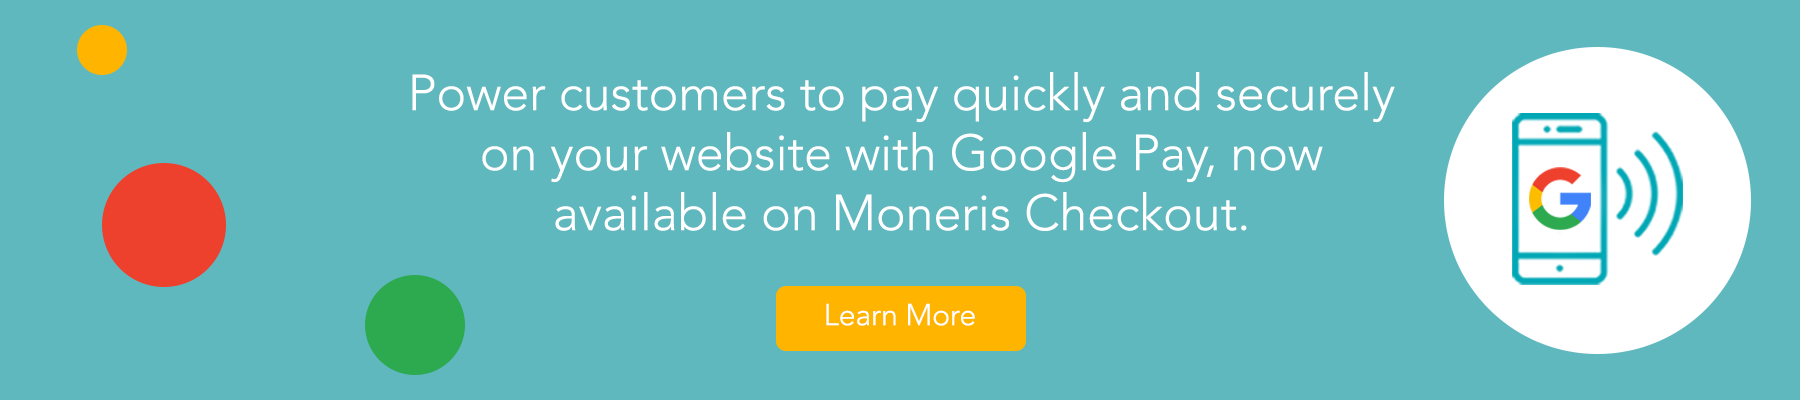 Power customers to pay quickly and securely on your website with Google Pay, now available on Moneris Checkout. Learn More.